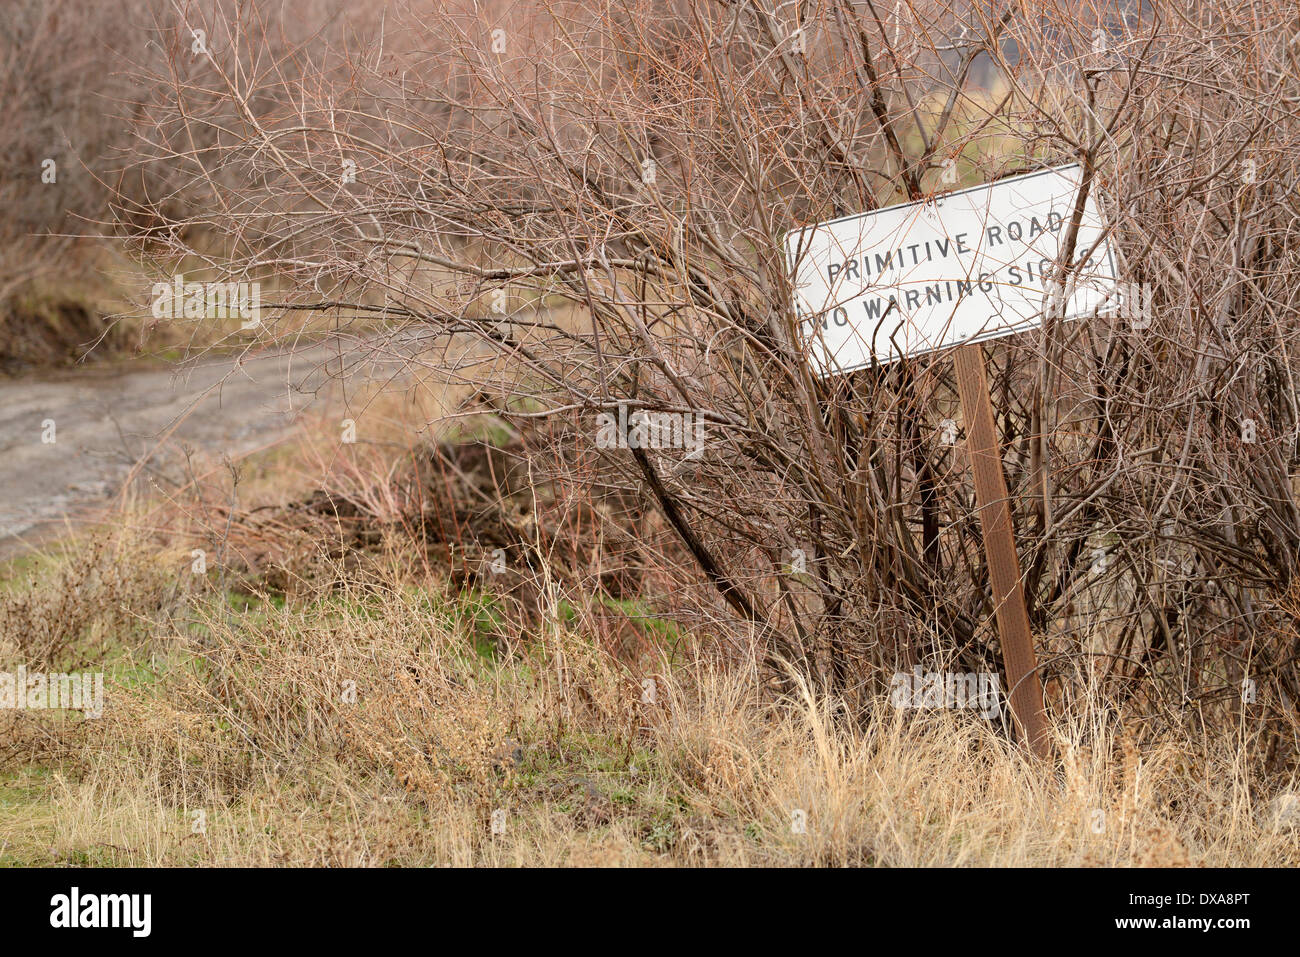 Primative road warning sign on the lower Imnaha River in Hells Canyon, Oregon. - Stock Image